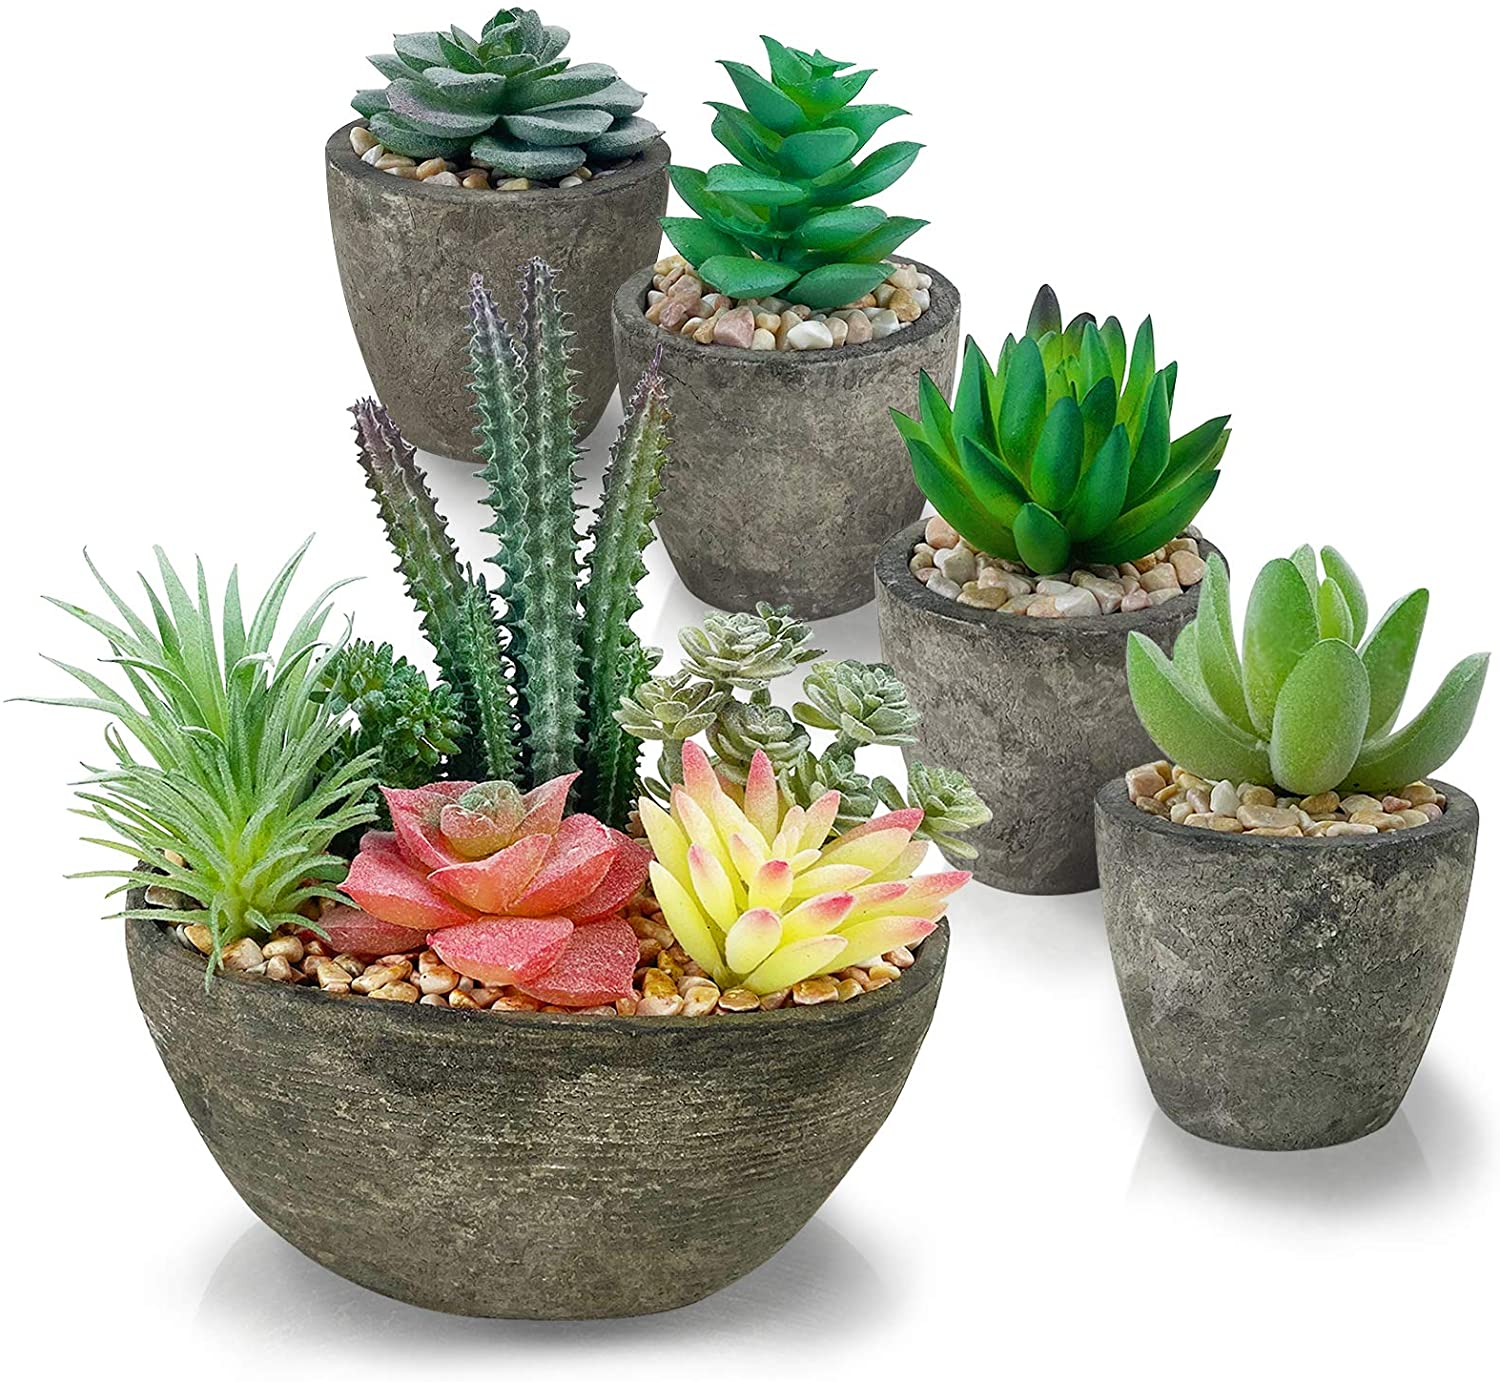 Succulents Plants Artificial Set of 5, Realistic Fake Succulents with Cement Like Pots for Home Office Decoration.